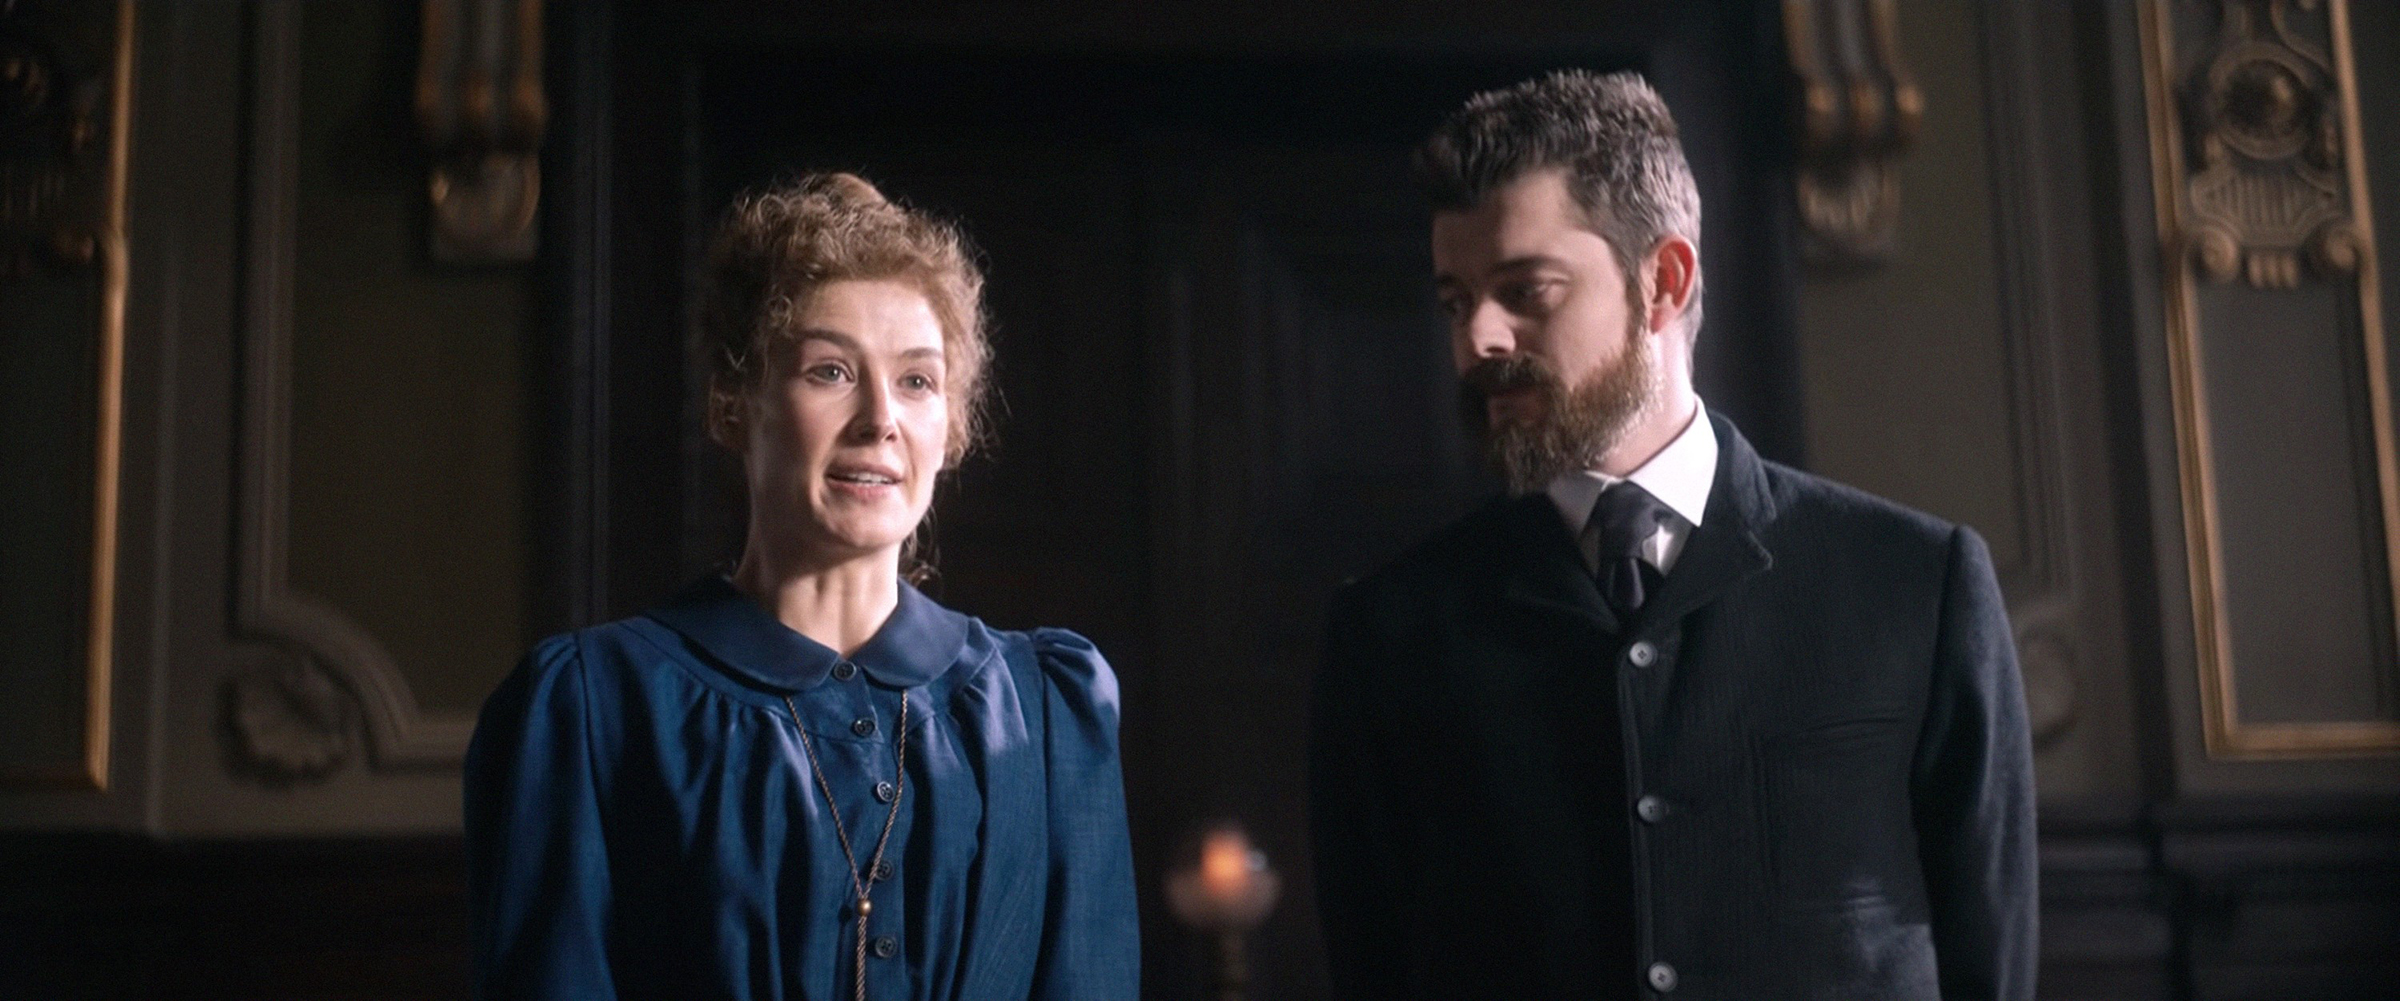 Rosamund Pike as Marie Curie, and Sam Riley as Pierre Curie in 'Radioactive'.